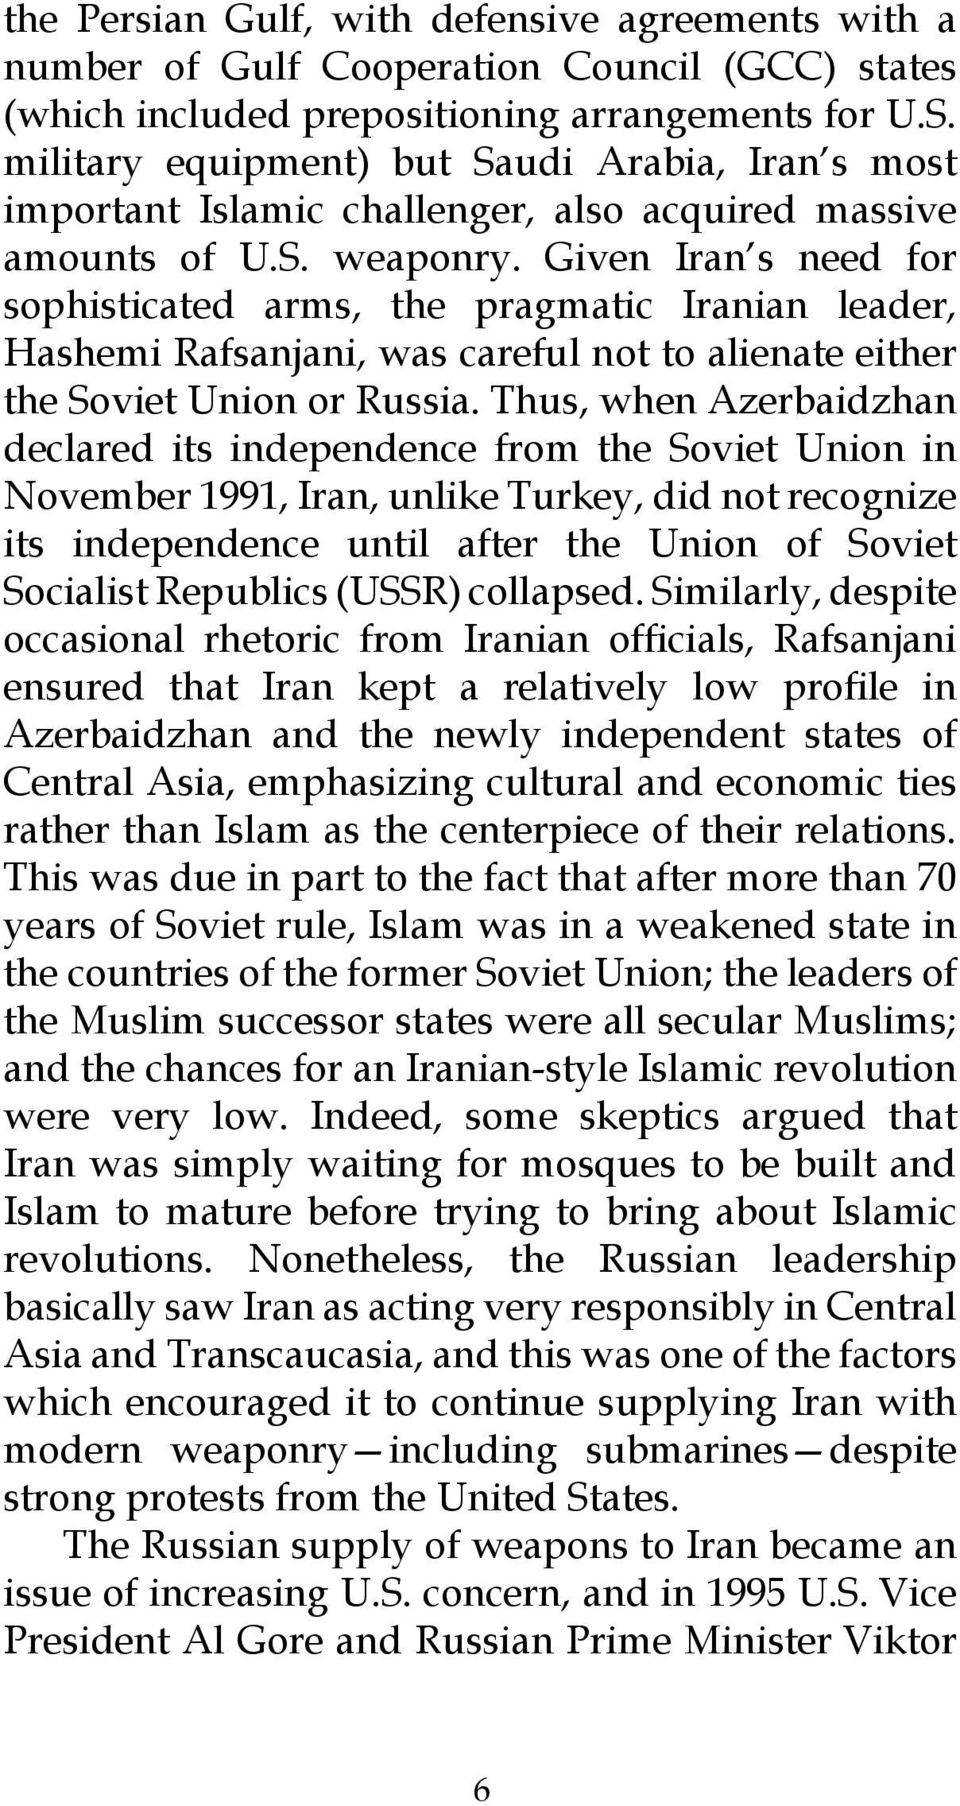 Given Iran s need for sophisticated arms, the pragmatic Iranian leader, Hashemi Rafsanjani, was careful not to alienate either the Soviet Union or Russia.